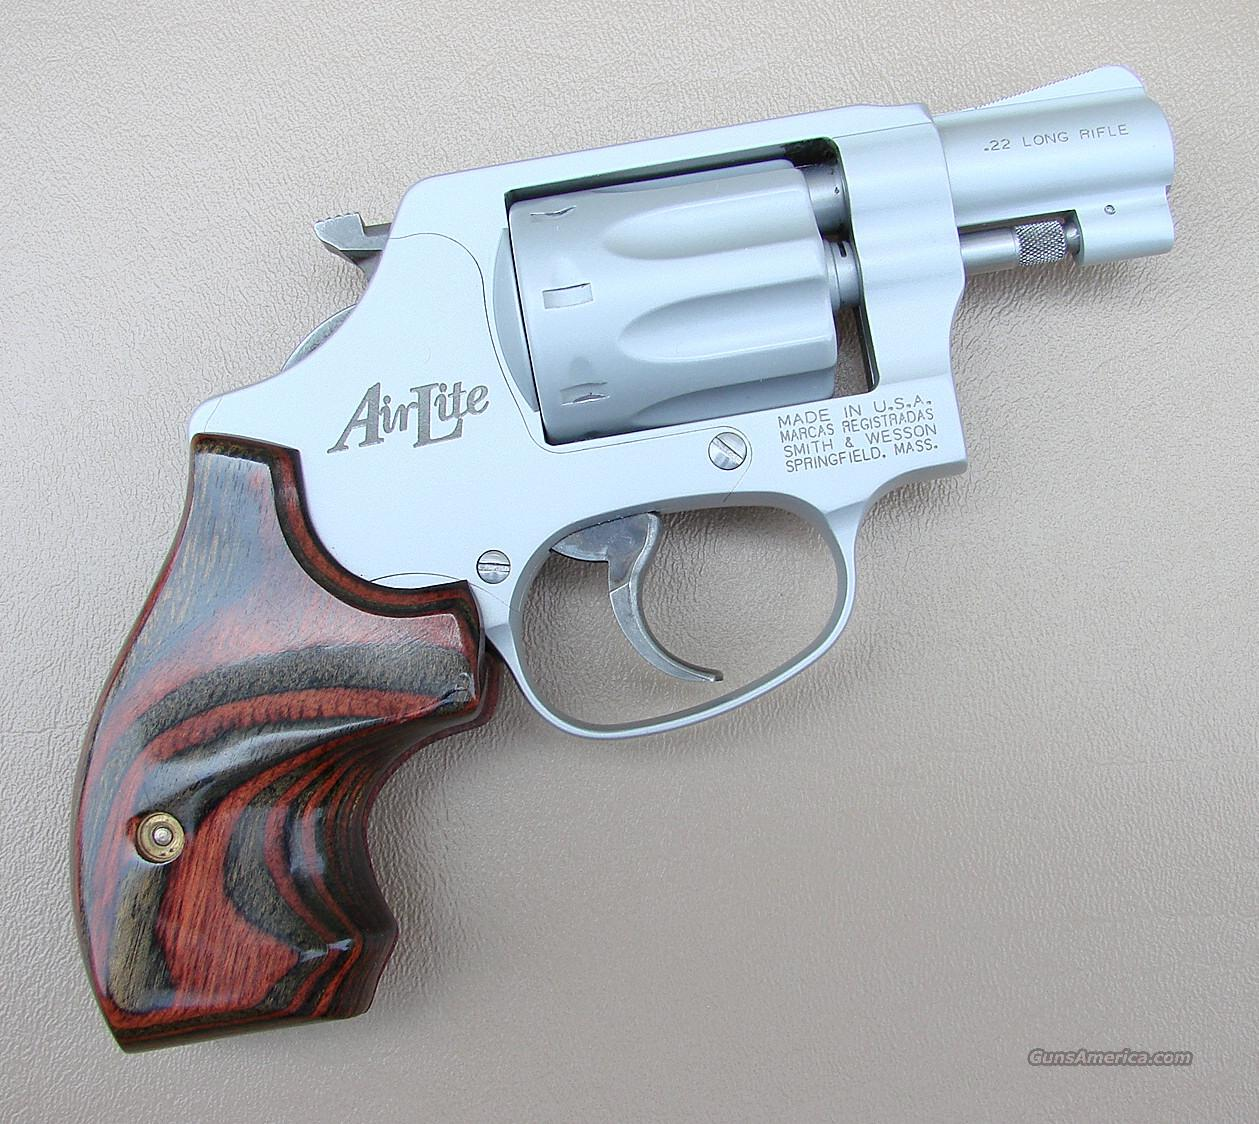 Smith & Wesson Model 317 AirLite 22 Cal 12 Ounce Revolver  Guns > Pistols > Smith & Wesson Revolvers > Full Frame Revolver